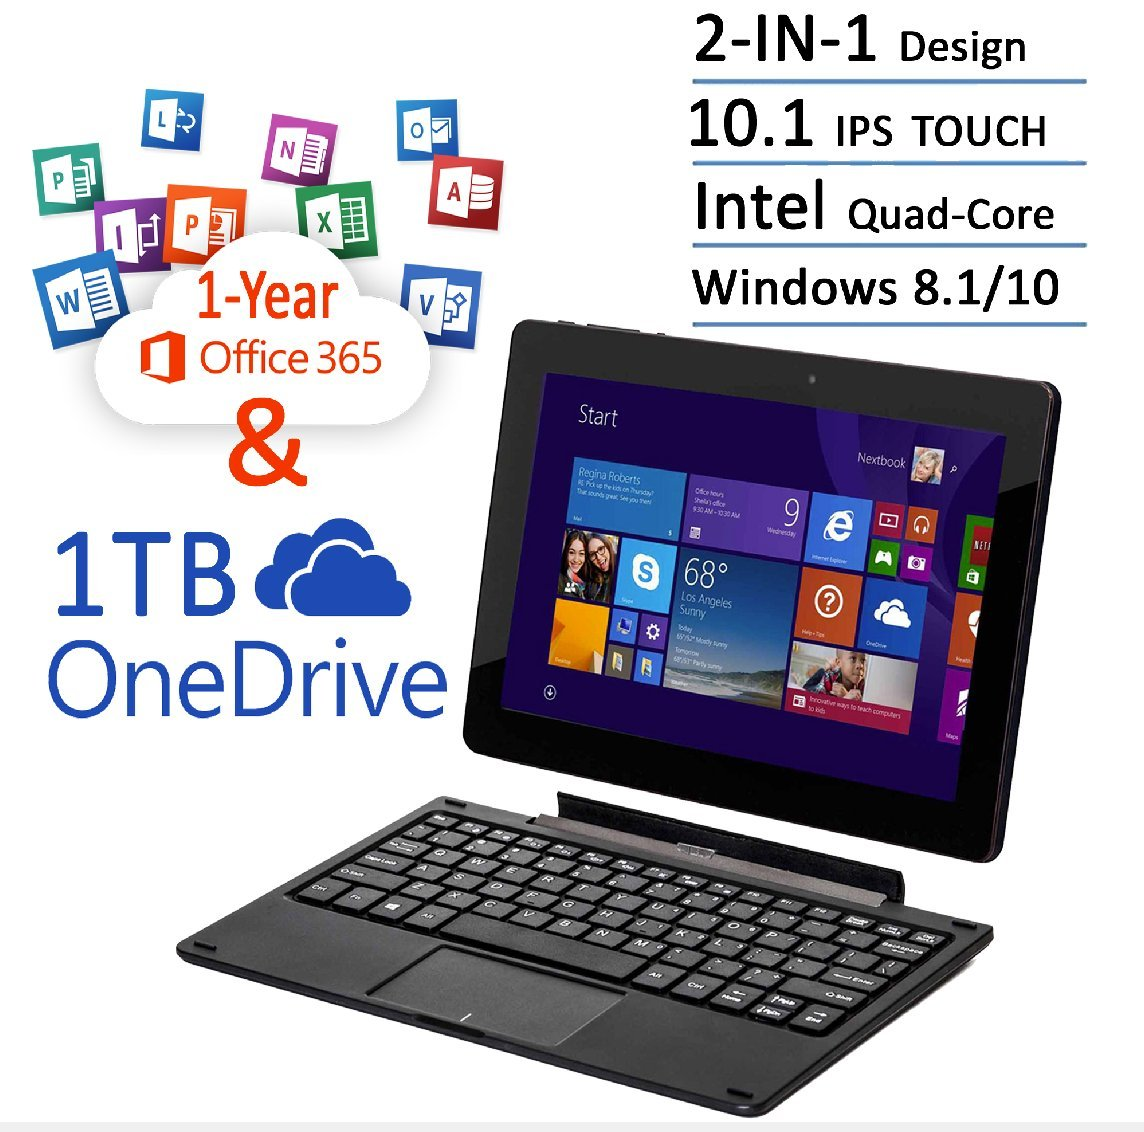 Newest Nextbook Flexx 10.1 Touchscreen Convertible Tablet Laptop With Keyboard 1 Year Office 365 1TB OneDrive (Intel Quad-Core Z3735F Processor, 2G RAM, 32G Memory, IPS Display, Windows 8.1/10)